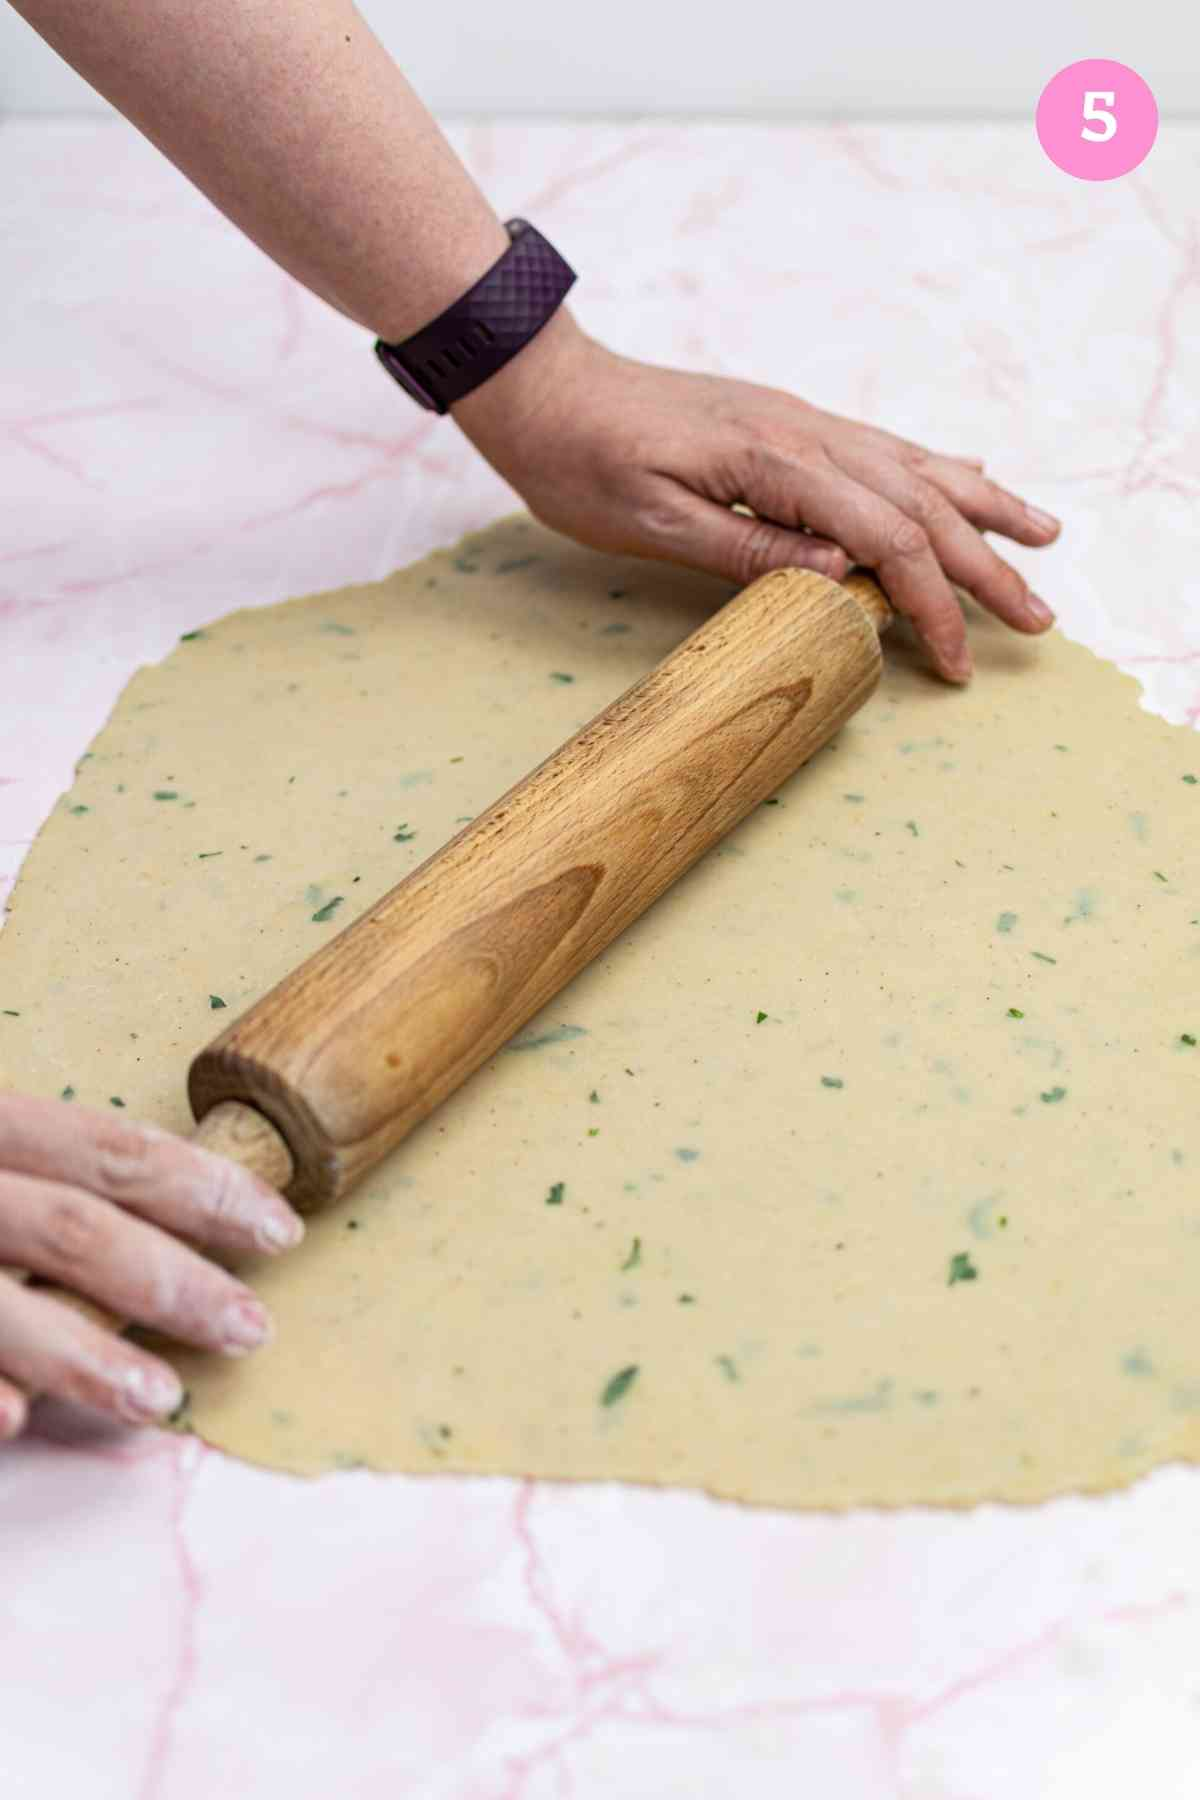 Rolling out hot water crust